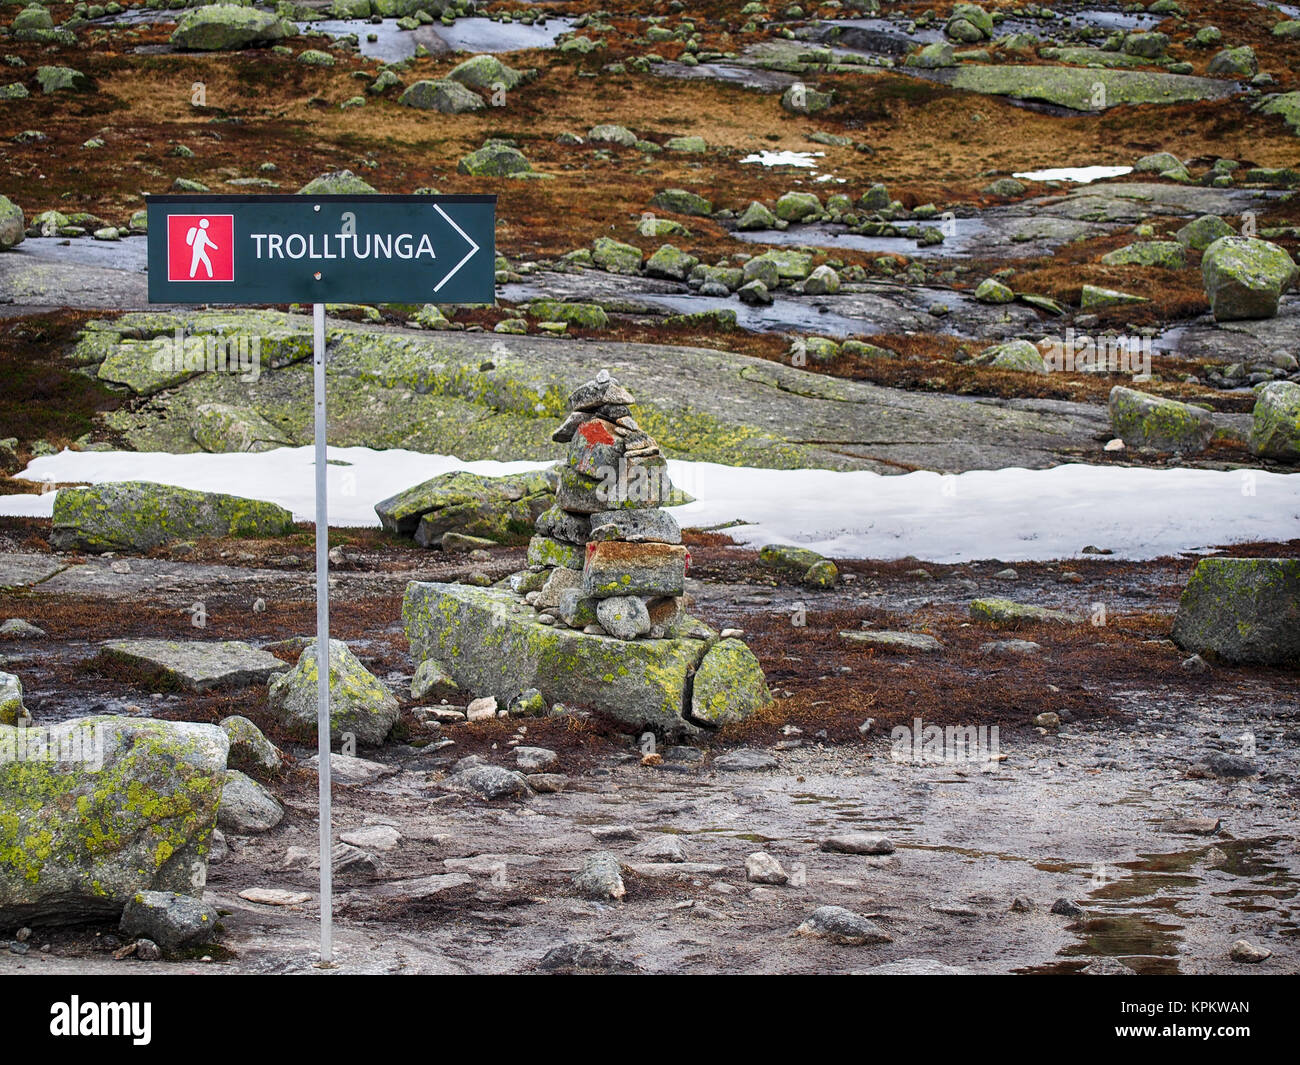 Plate-pointer for the way to Trolltunga (Troll tongue), Norway - Stock Image